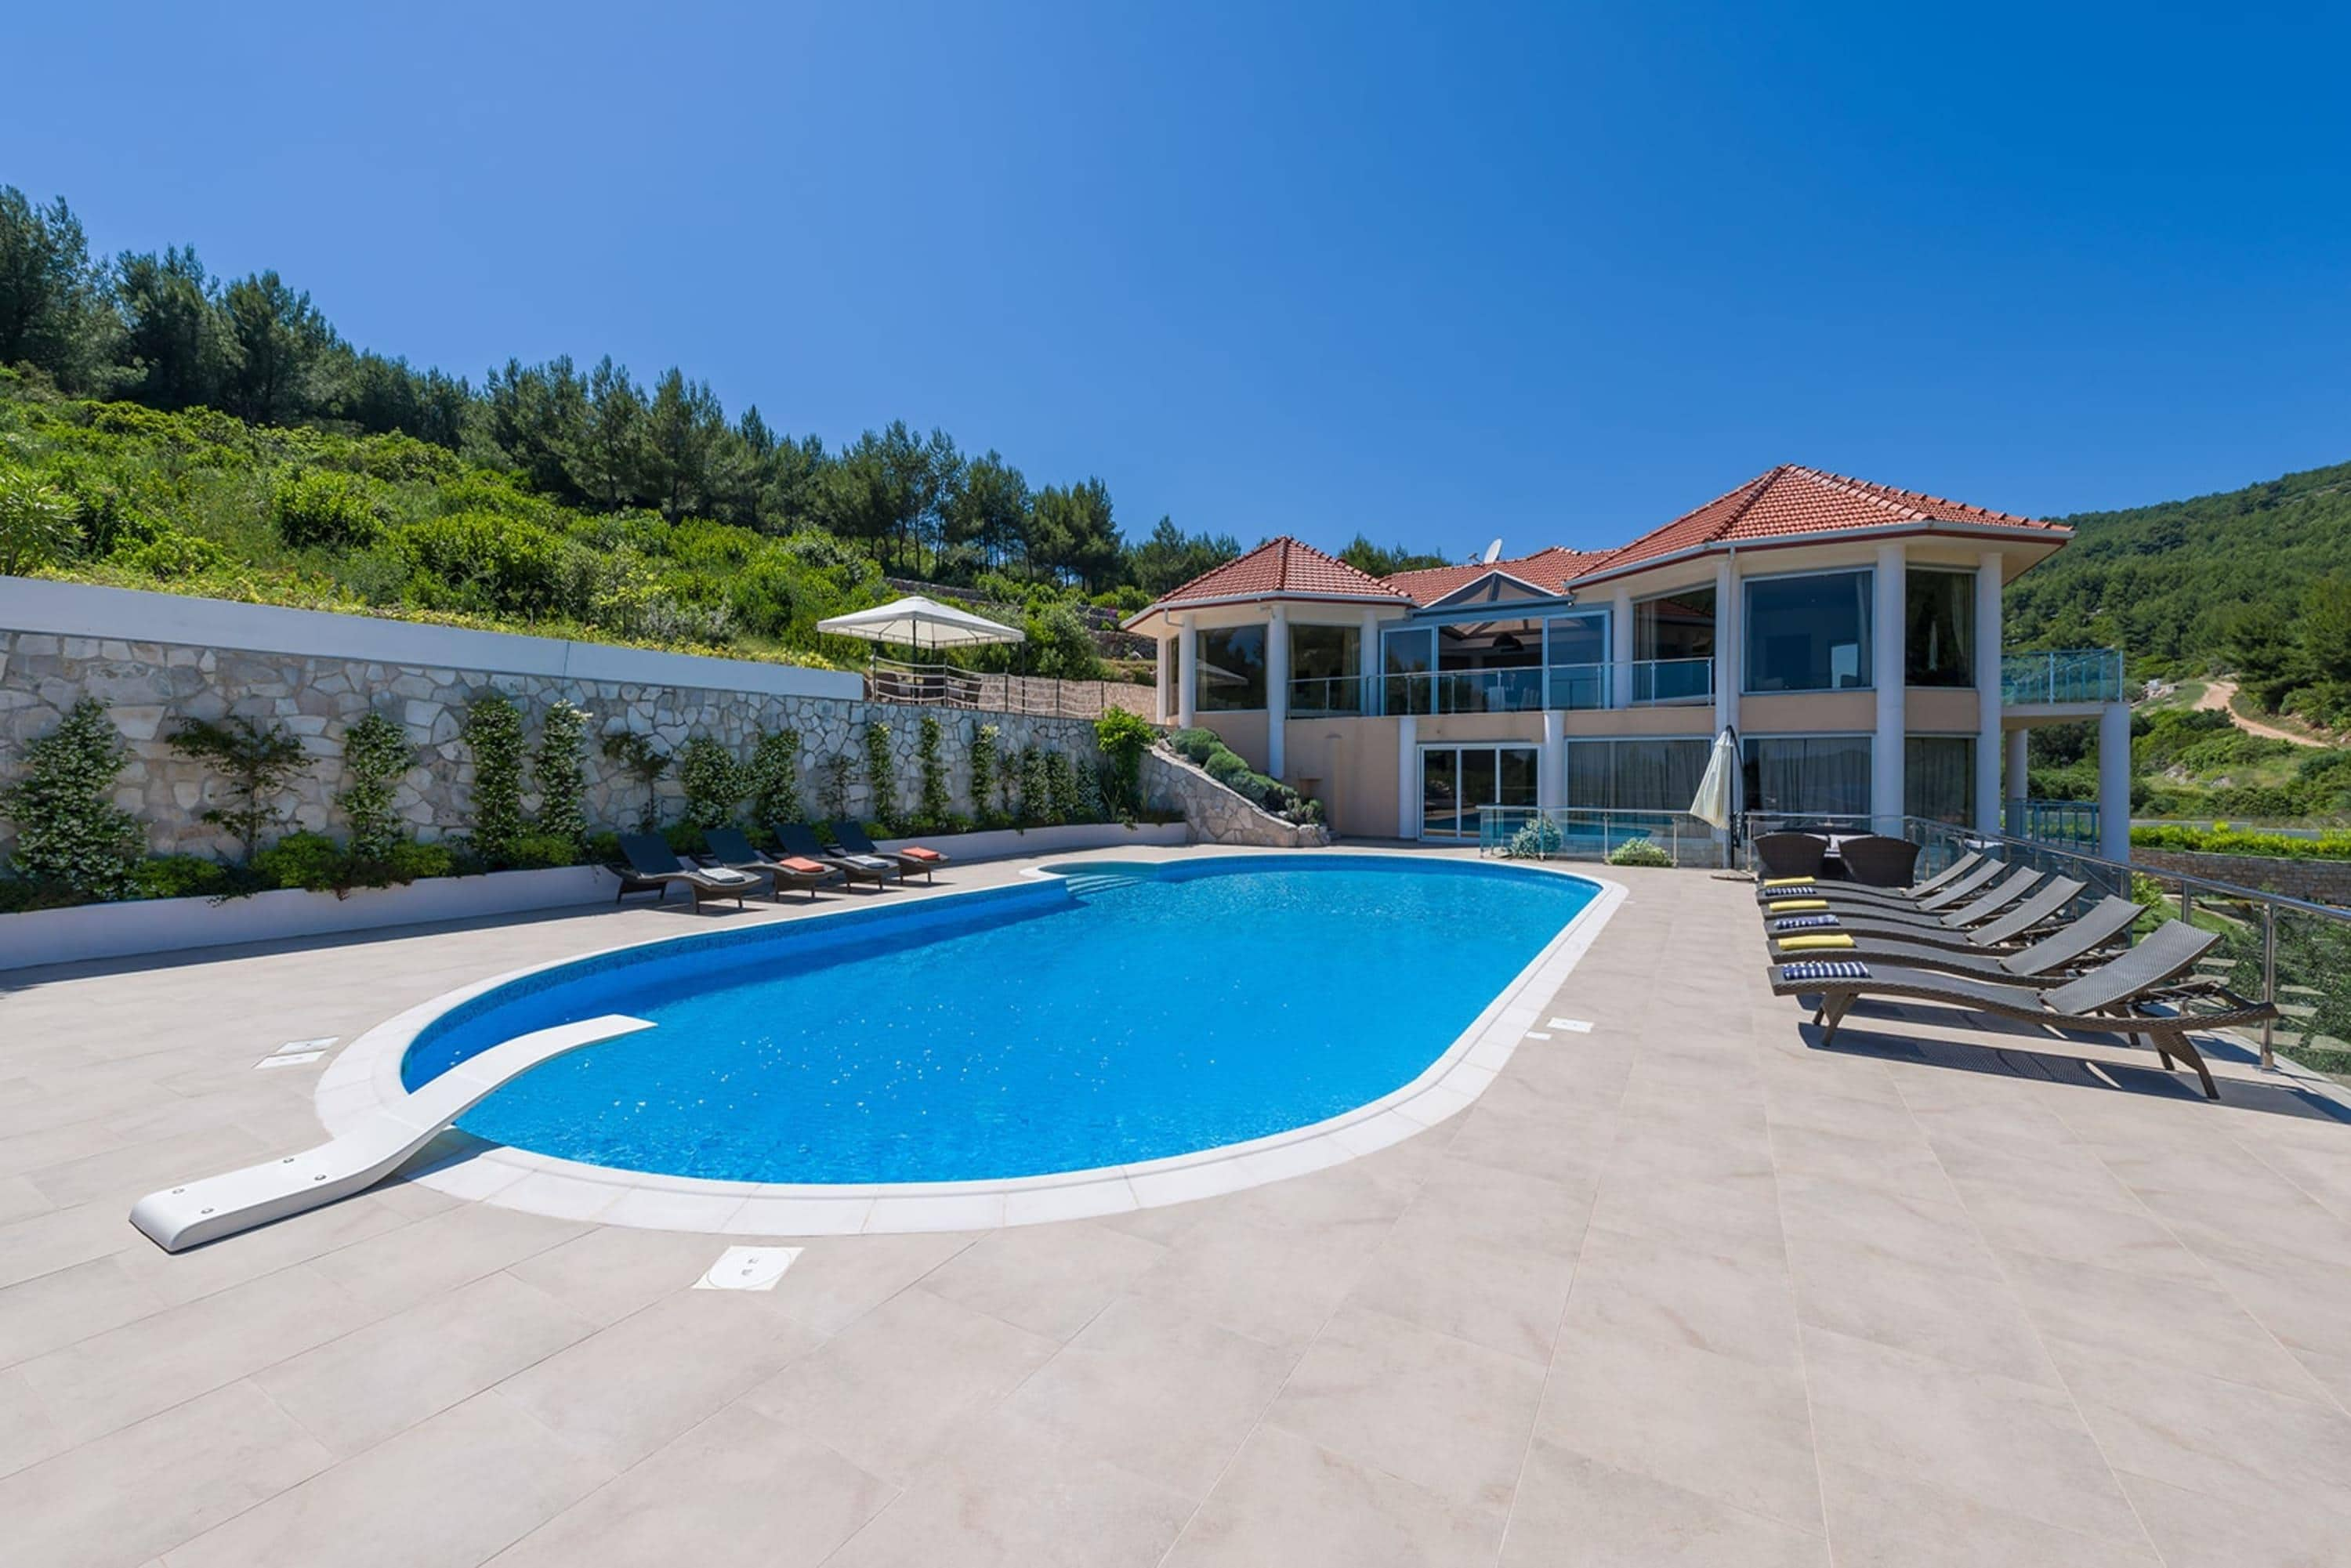 Property Image 1 - Spacious Fantastic 6 Bedroom Villa with Beautiful Swimming Pool